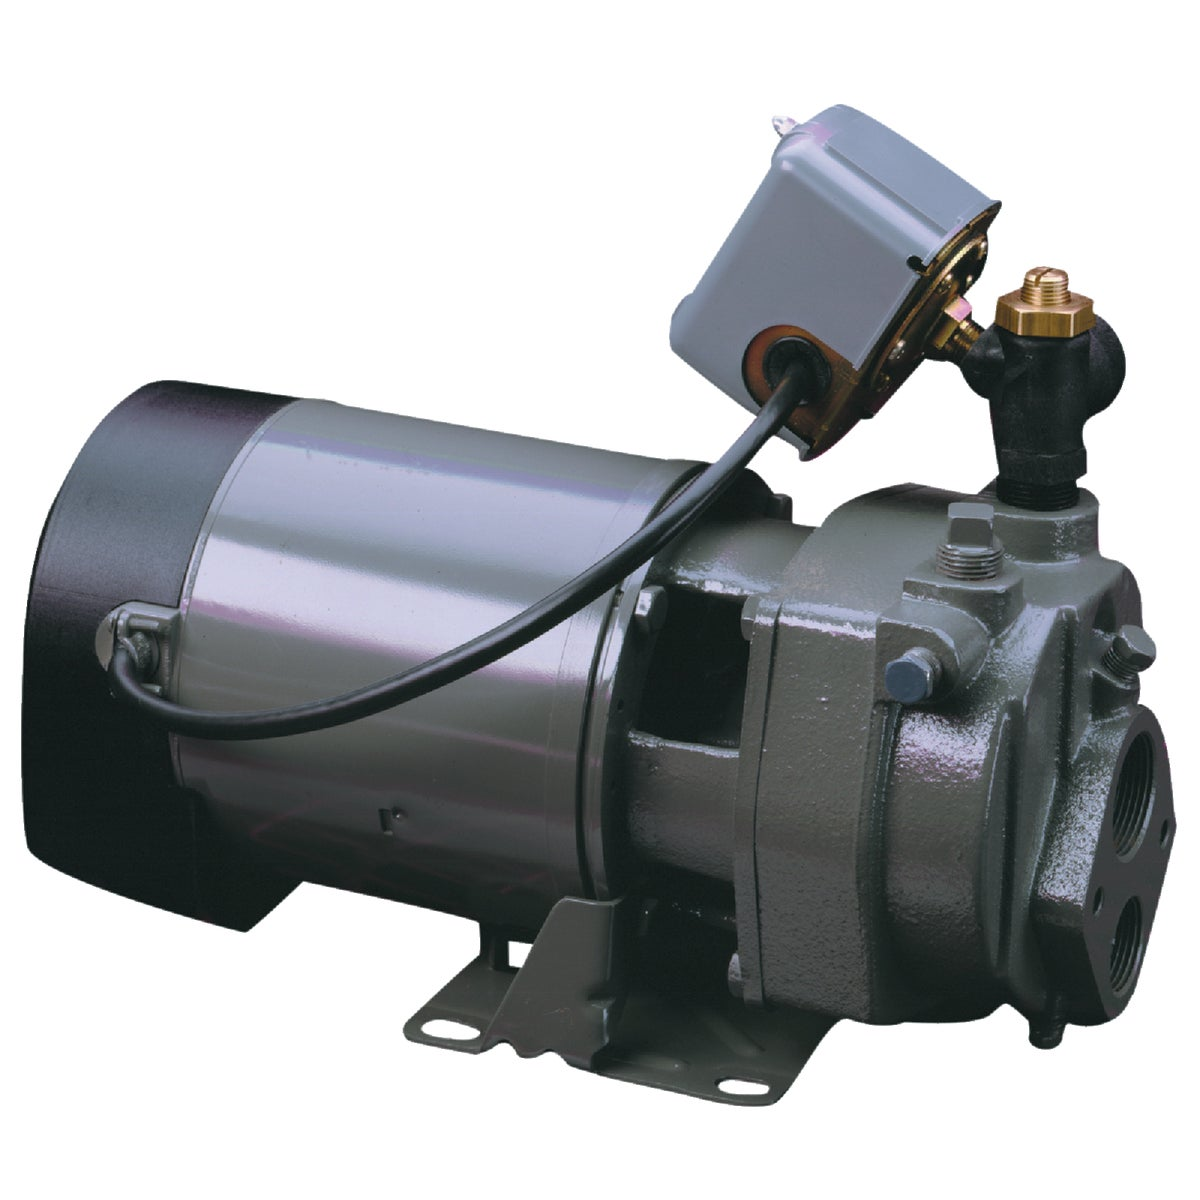 1HP CONV JET WELL PUMP - JHU10 by Star Water Systems